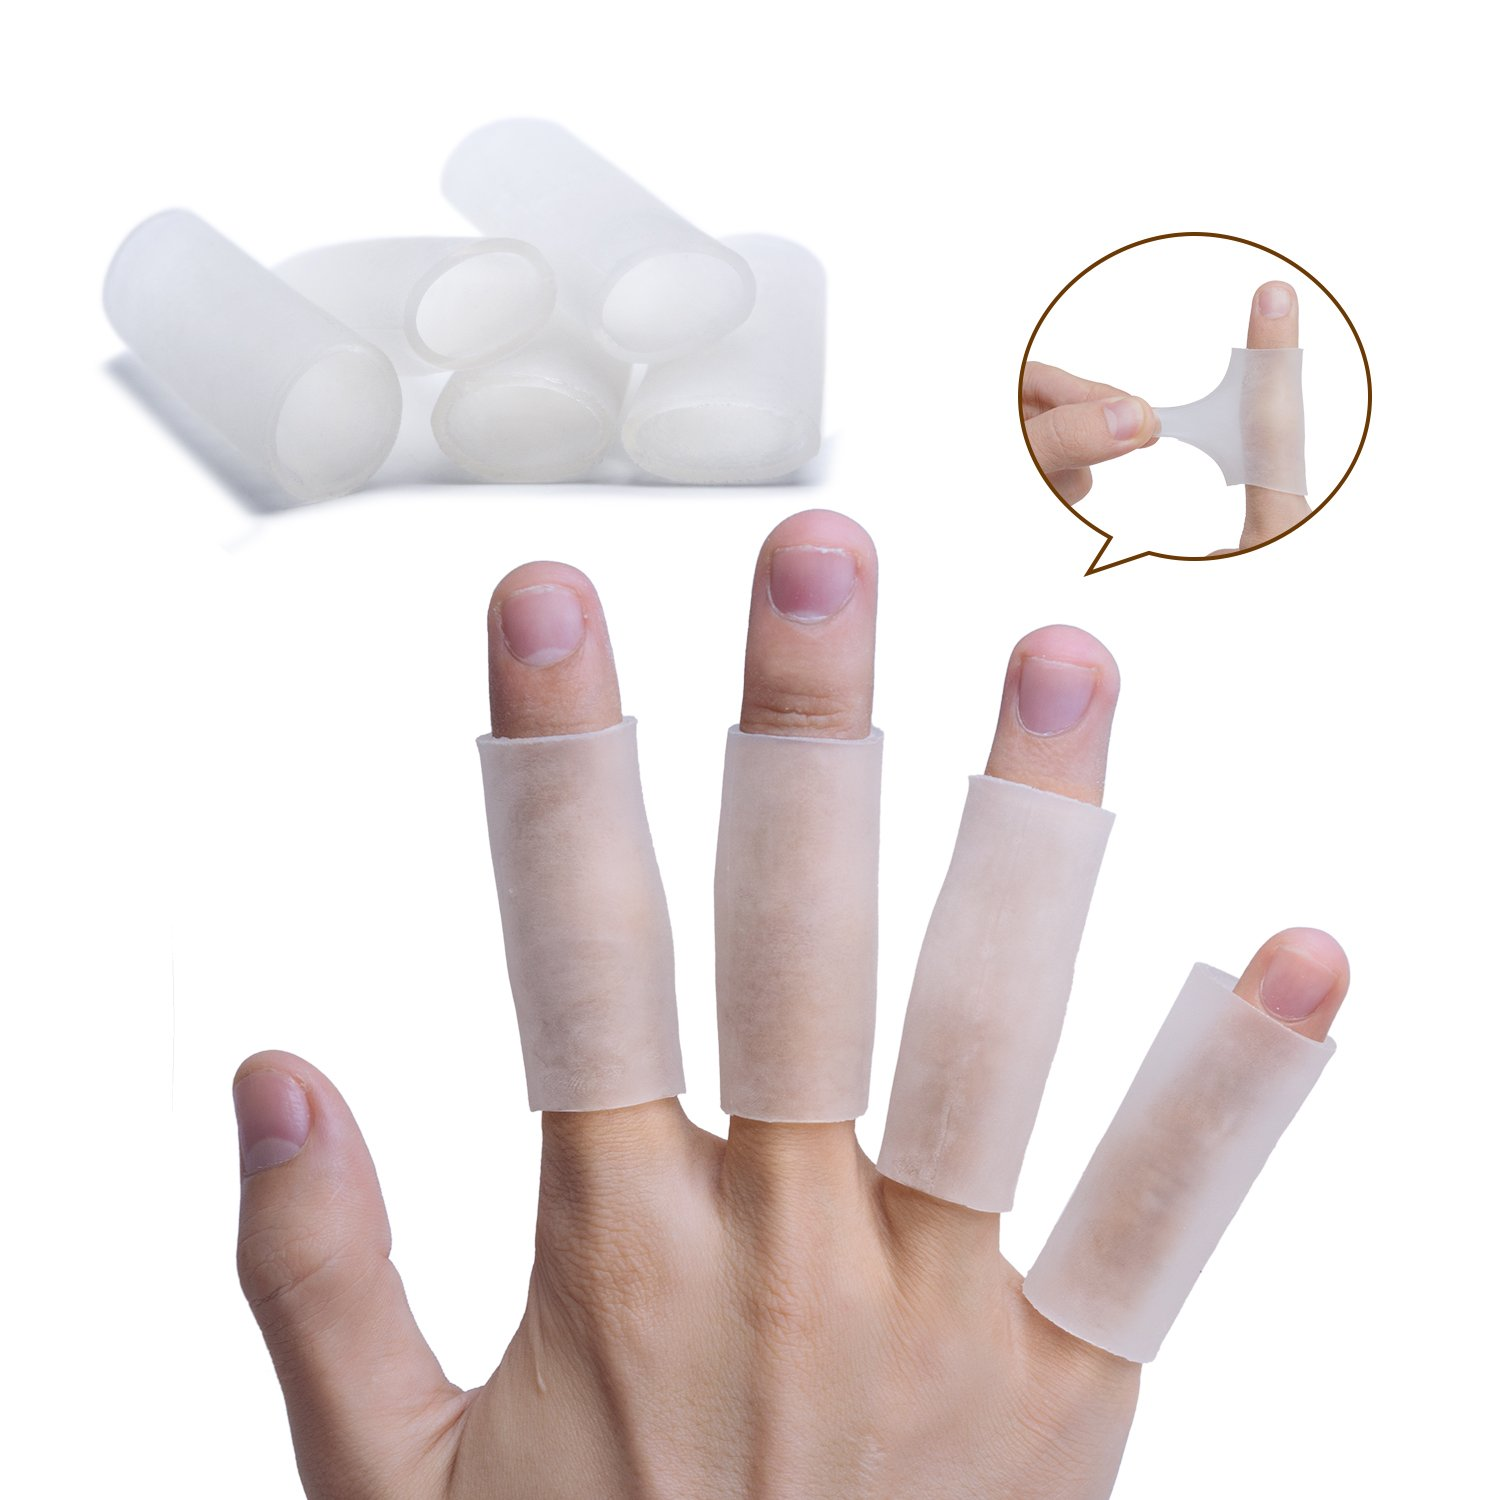 Sumifun Silicone Thumb Sleeves- Gel Finger Protector Support for Arthritis Basketball Mallet Finger Trigger (Big Thumb Fingers, White)